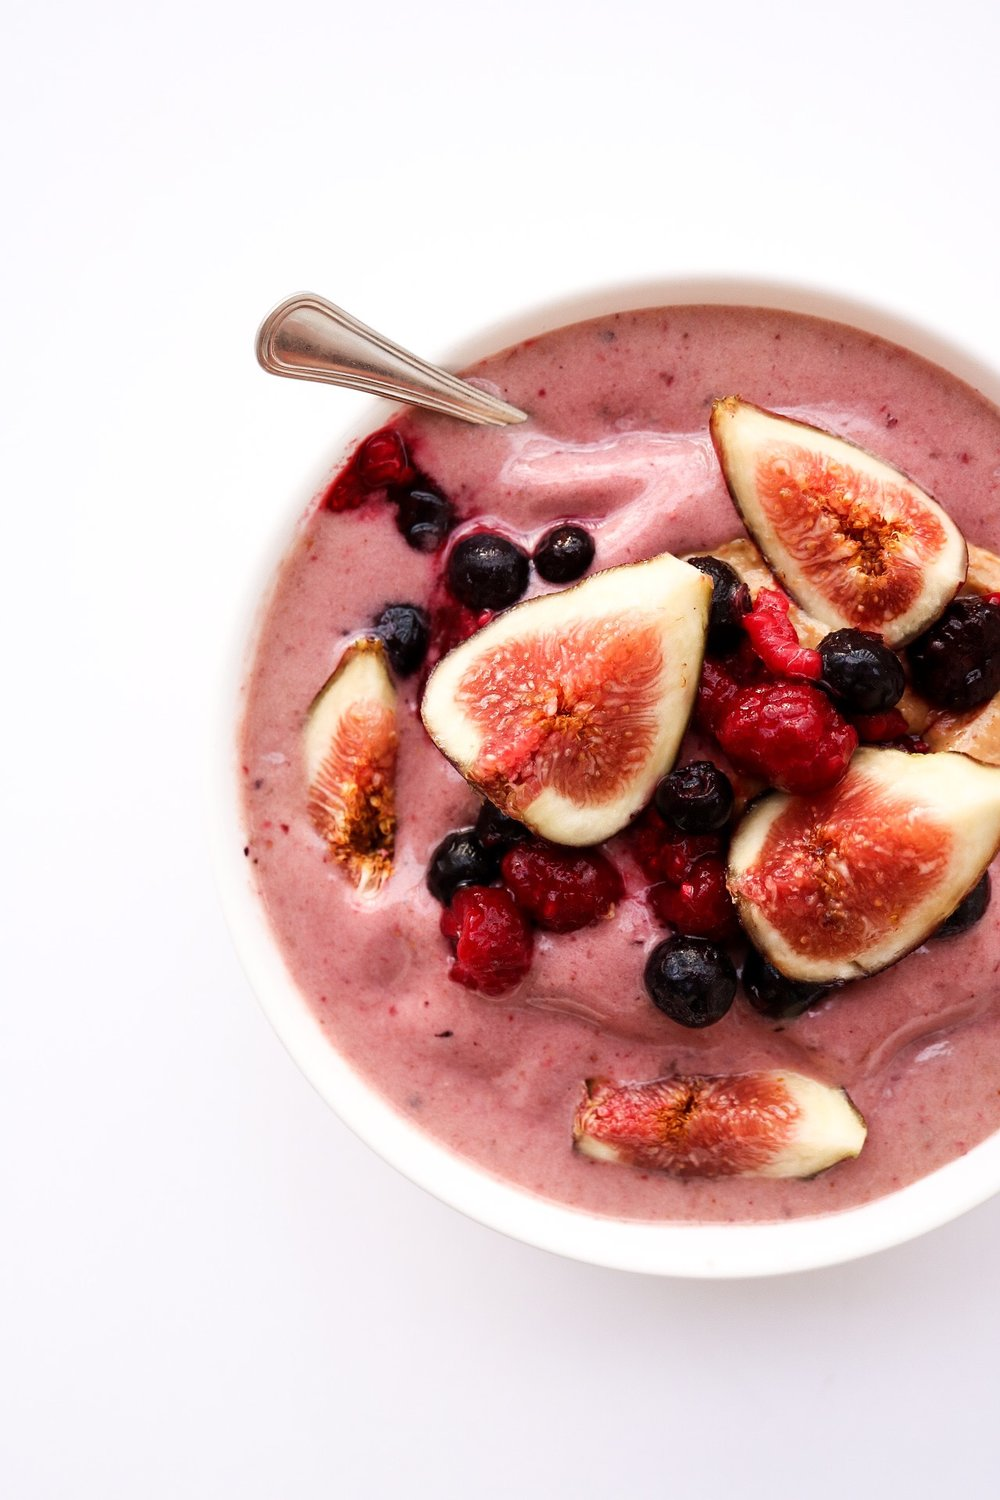 BERRY + FIG SMOOTHIE BOWL - INGREDIENTS:3 fresh figs2 frozen banana1/2 cup frozen or fresh berriesDIRECTIONS:Add ingredients to your blender & mix it all up. If you used frozen berries, add 1/4 cup of water or plant milk to help the blender mix it well. Then, pour into a bowl and add your toppings of choice!